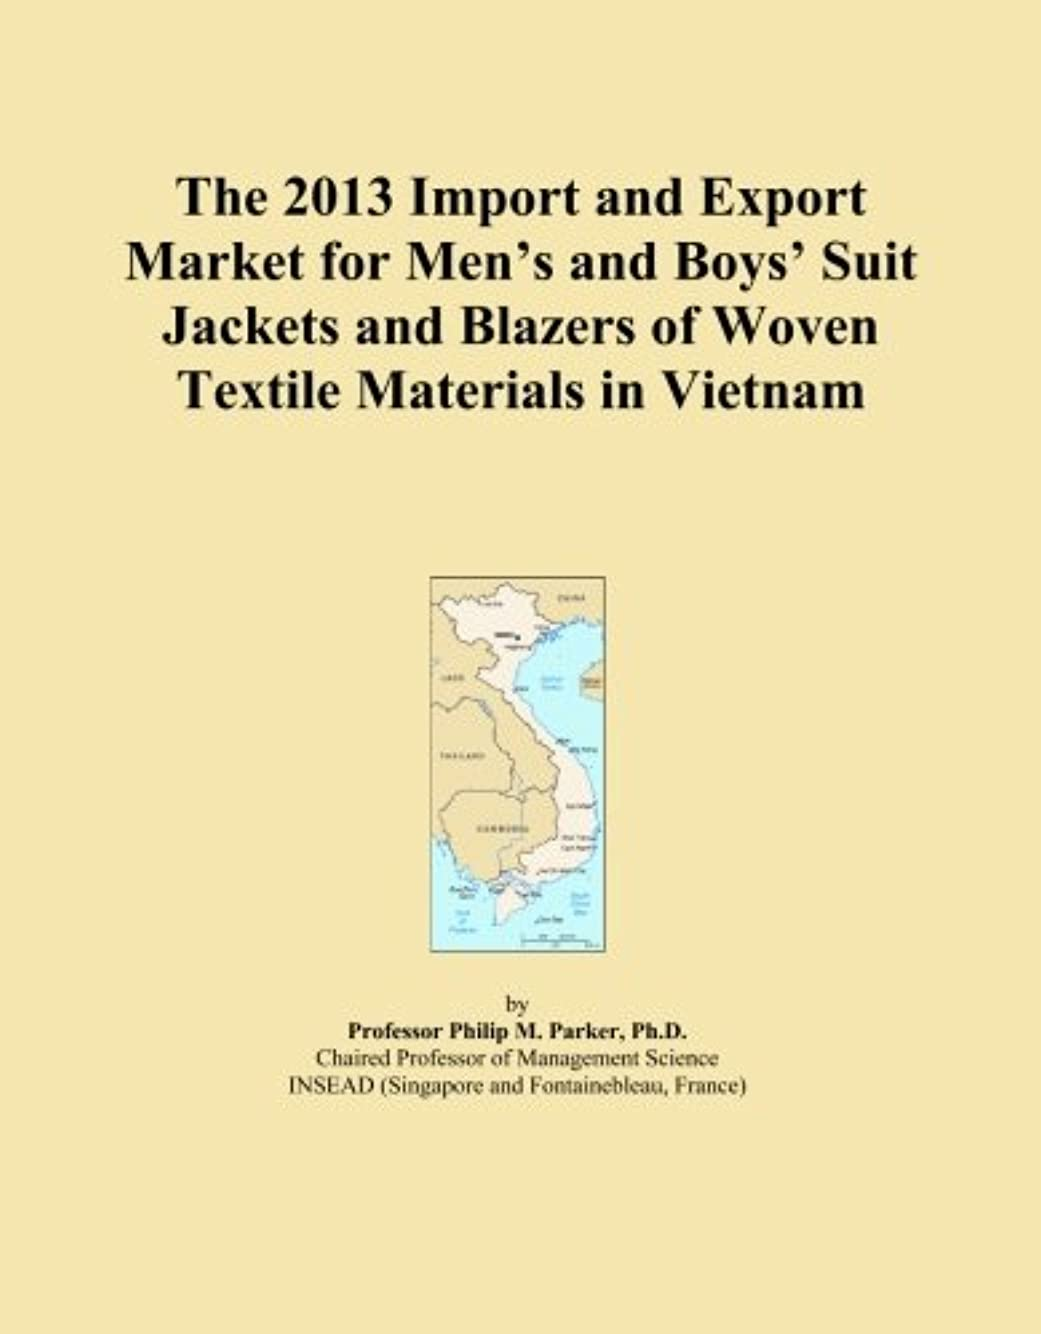 割り当てる週間自慢The 2013 Import and Export Market for Men's and Boys' Suit Jackets and Blazers of Woven Textile Materials in Vietnam